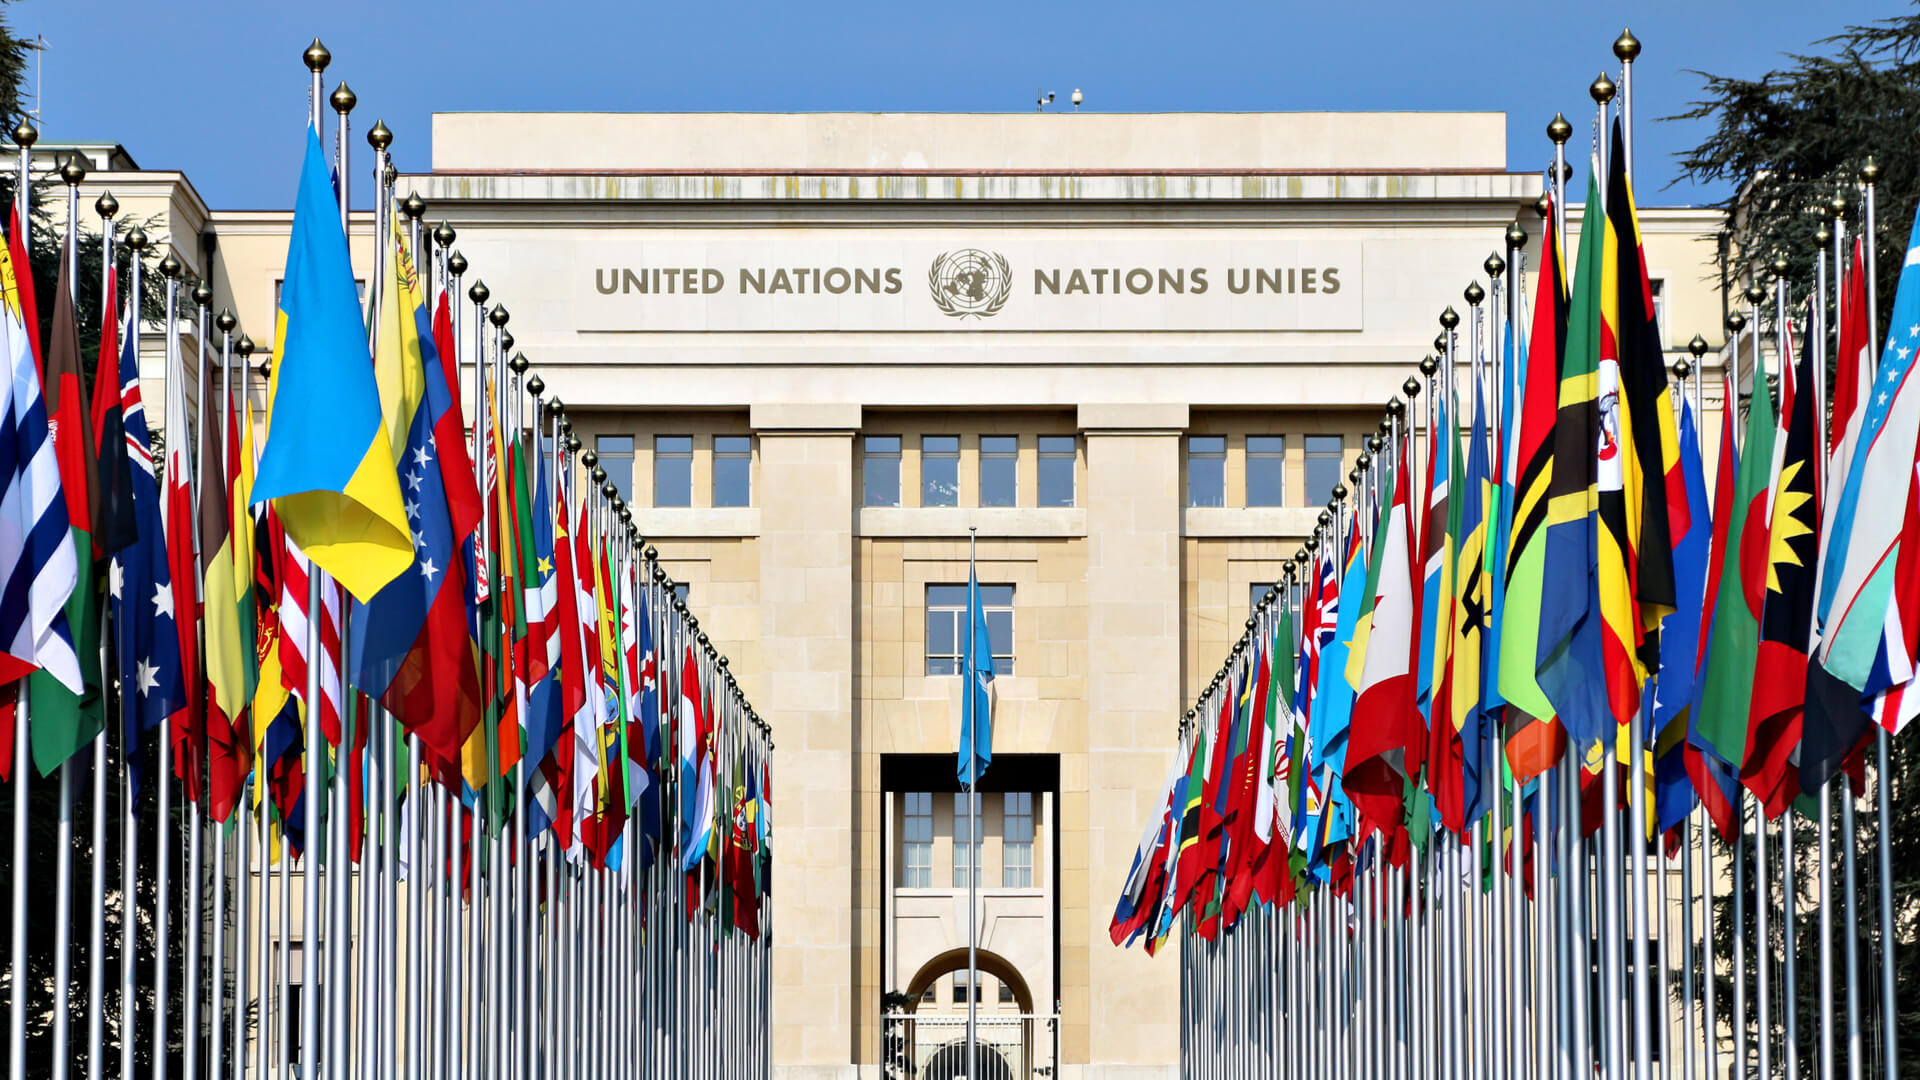 The Palace of Nations, headquarters of the United Nations in Geneva, Switzerland